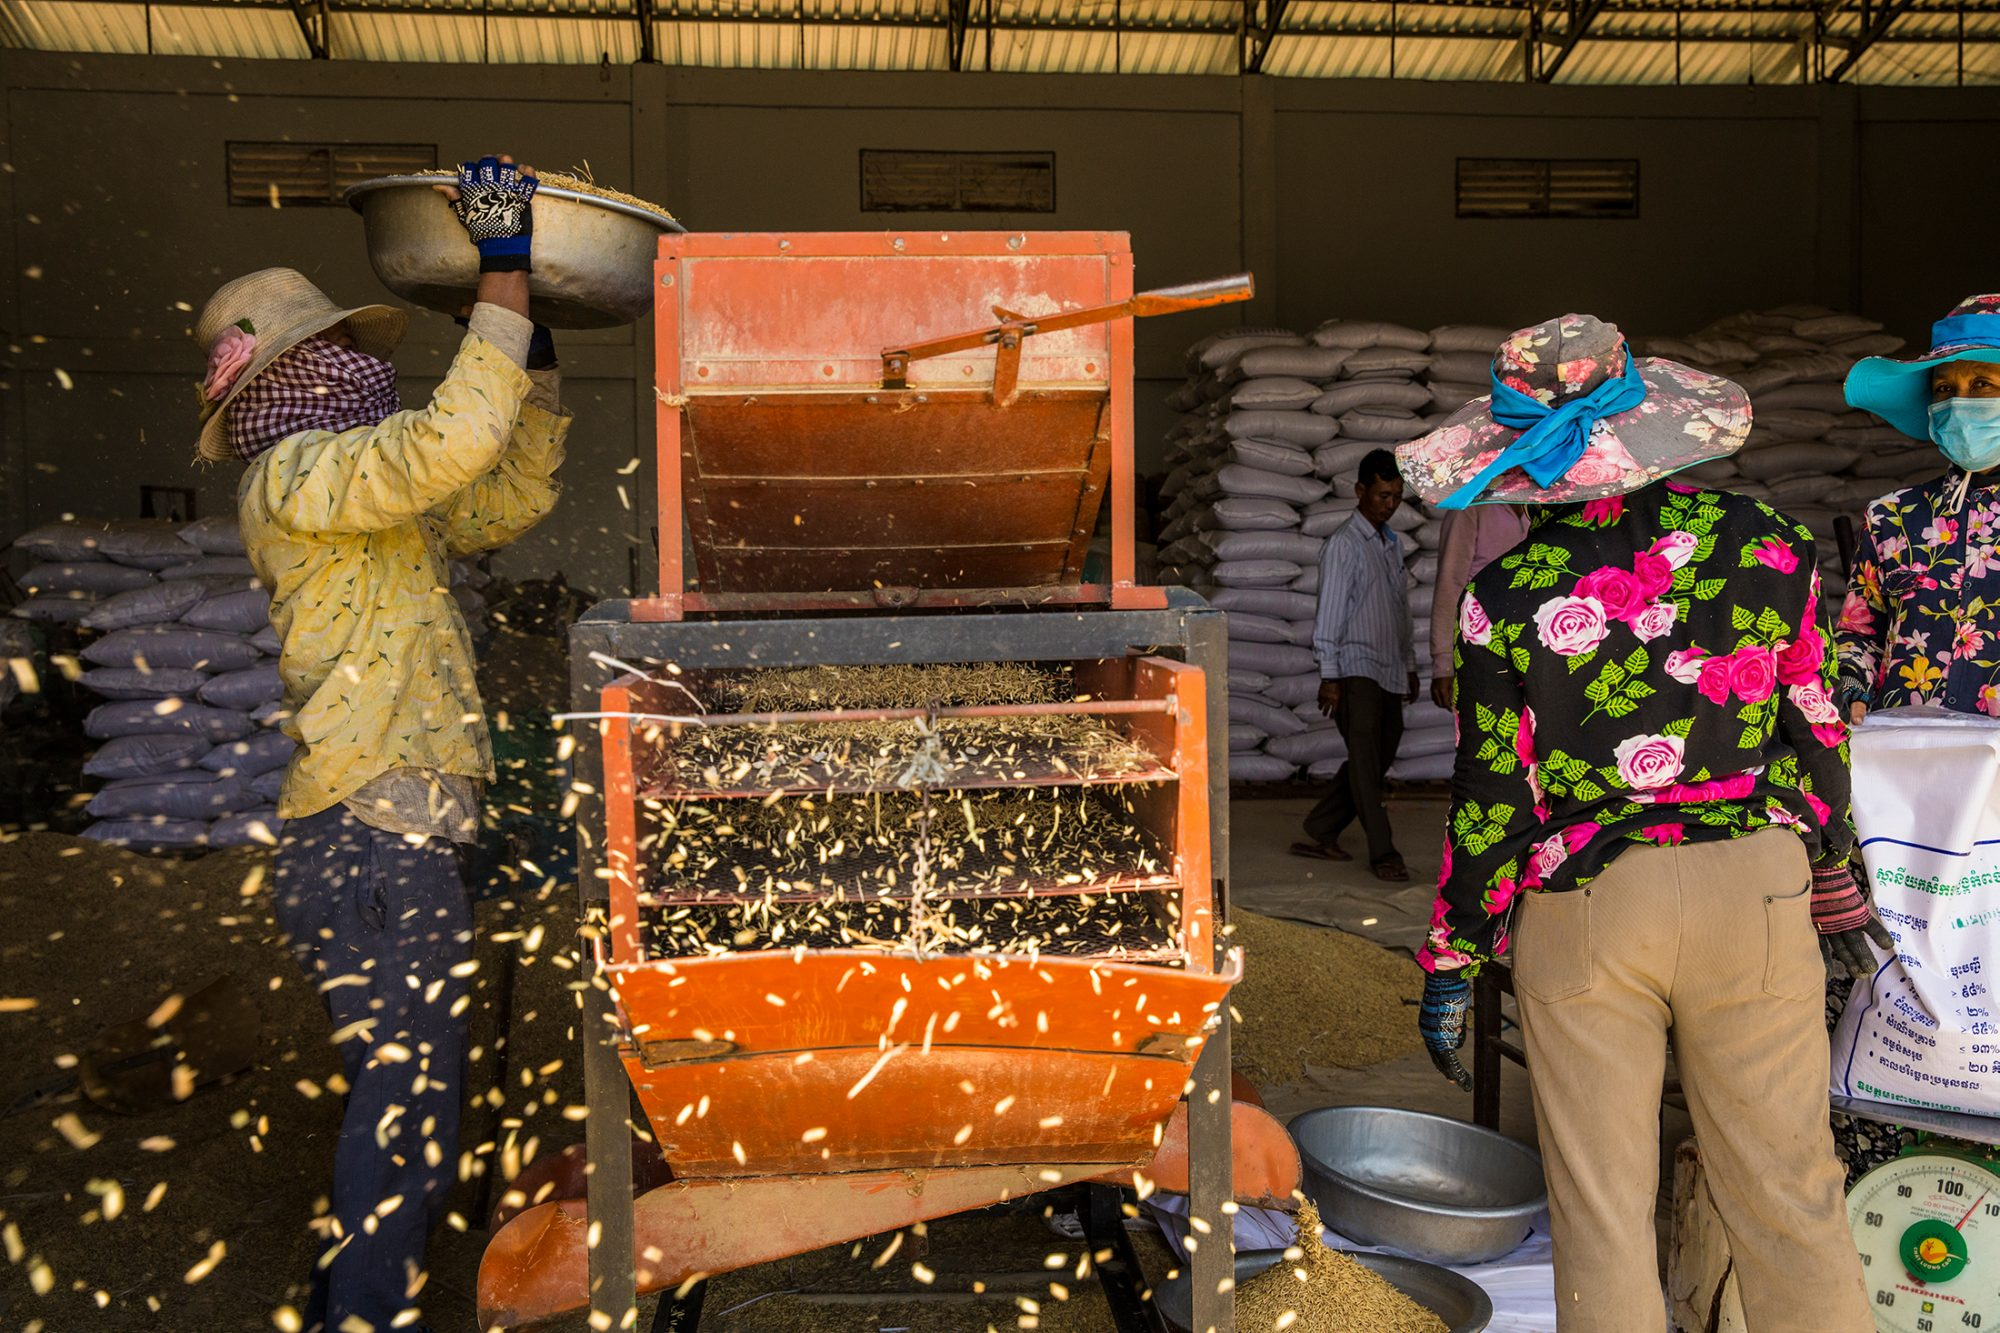 A woman pours rice into a machine that shoots rice husks into the air and separates the kernels